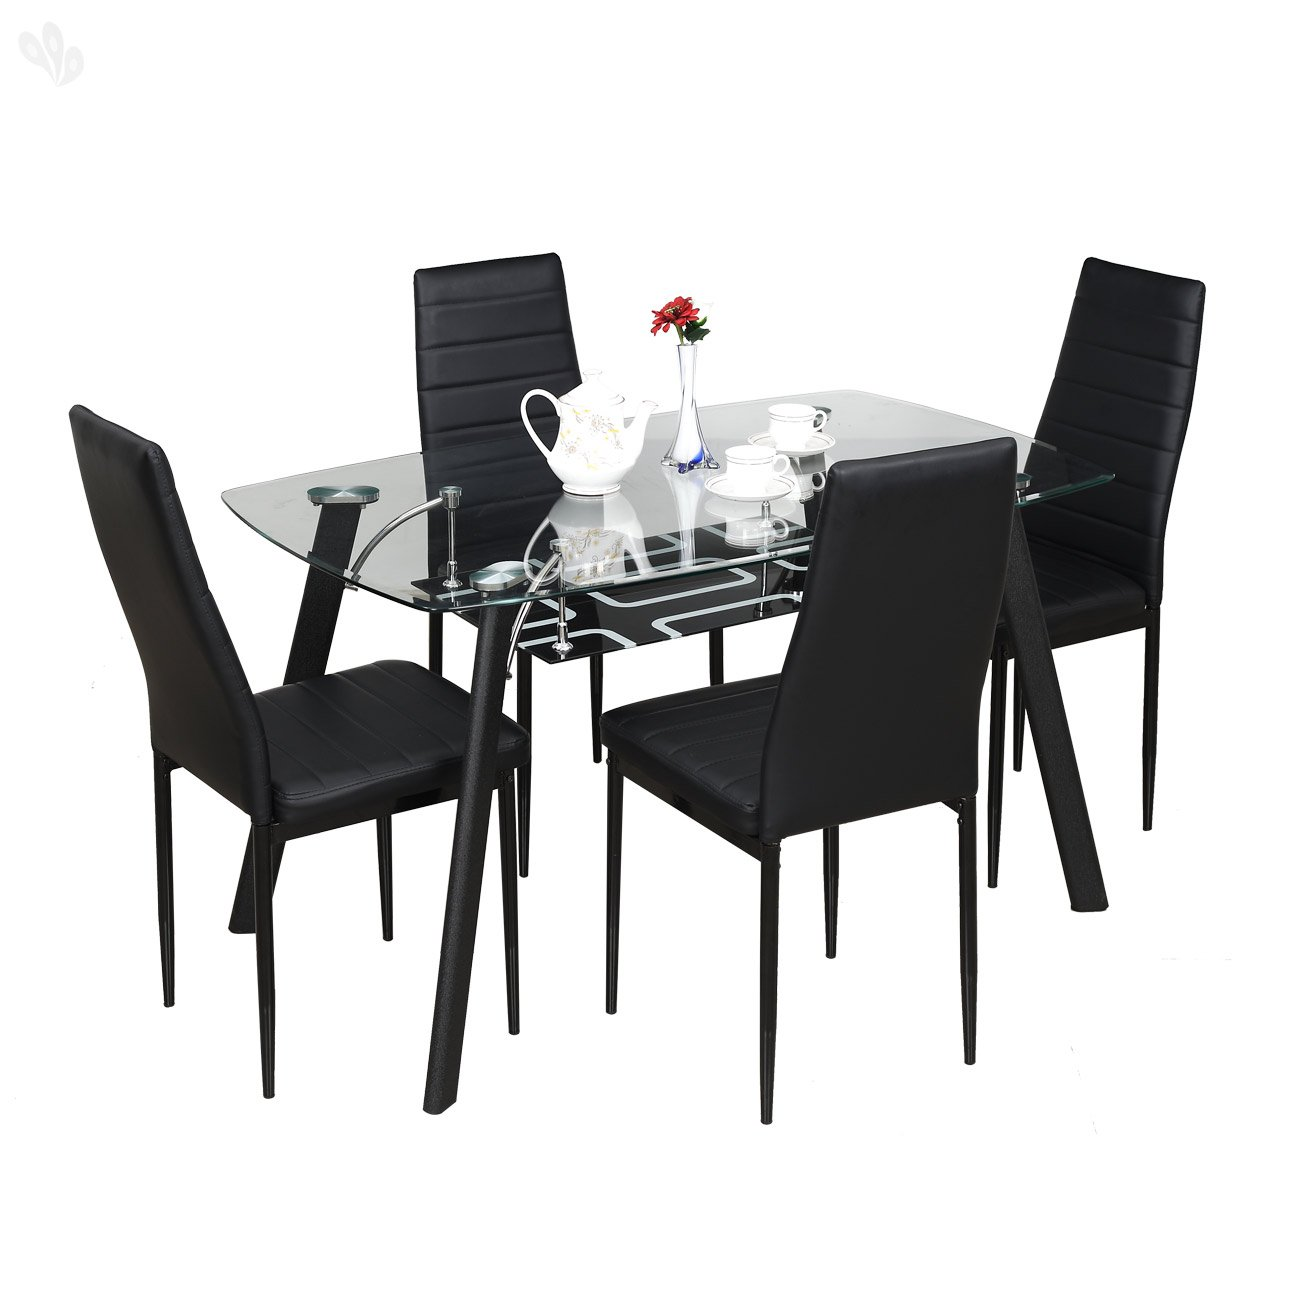 royal oak milan four seater dining table set black where can i buy the best furniture. Black Bedroom Furniture Sets. Home Design Ideas